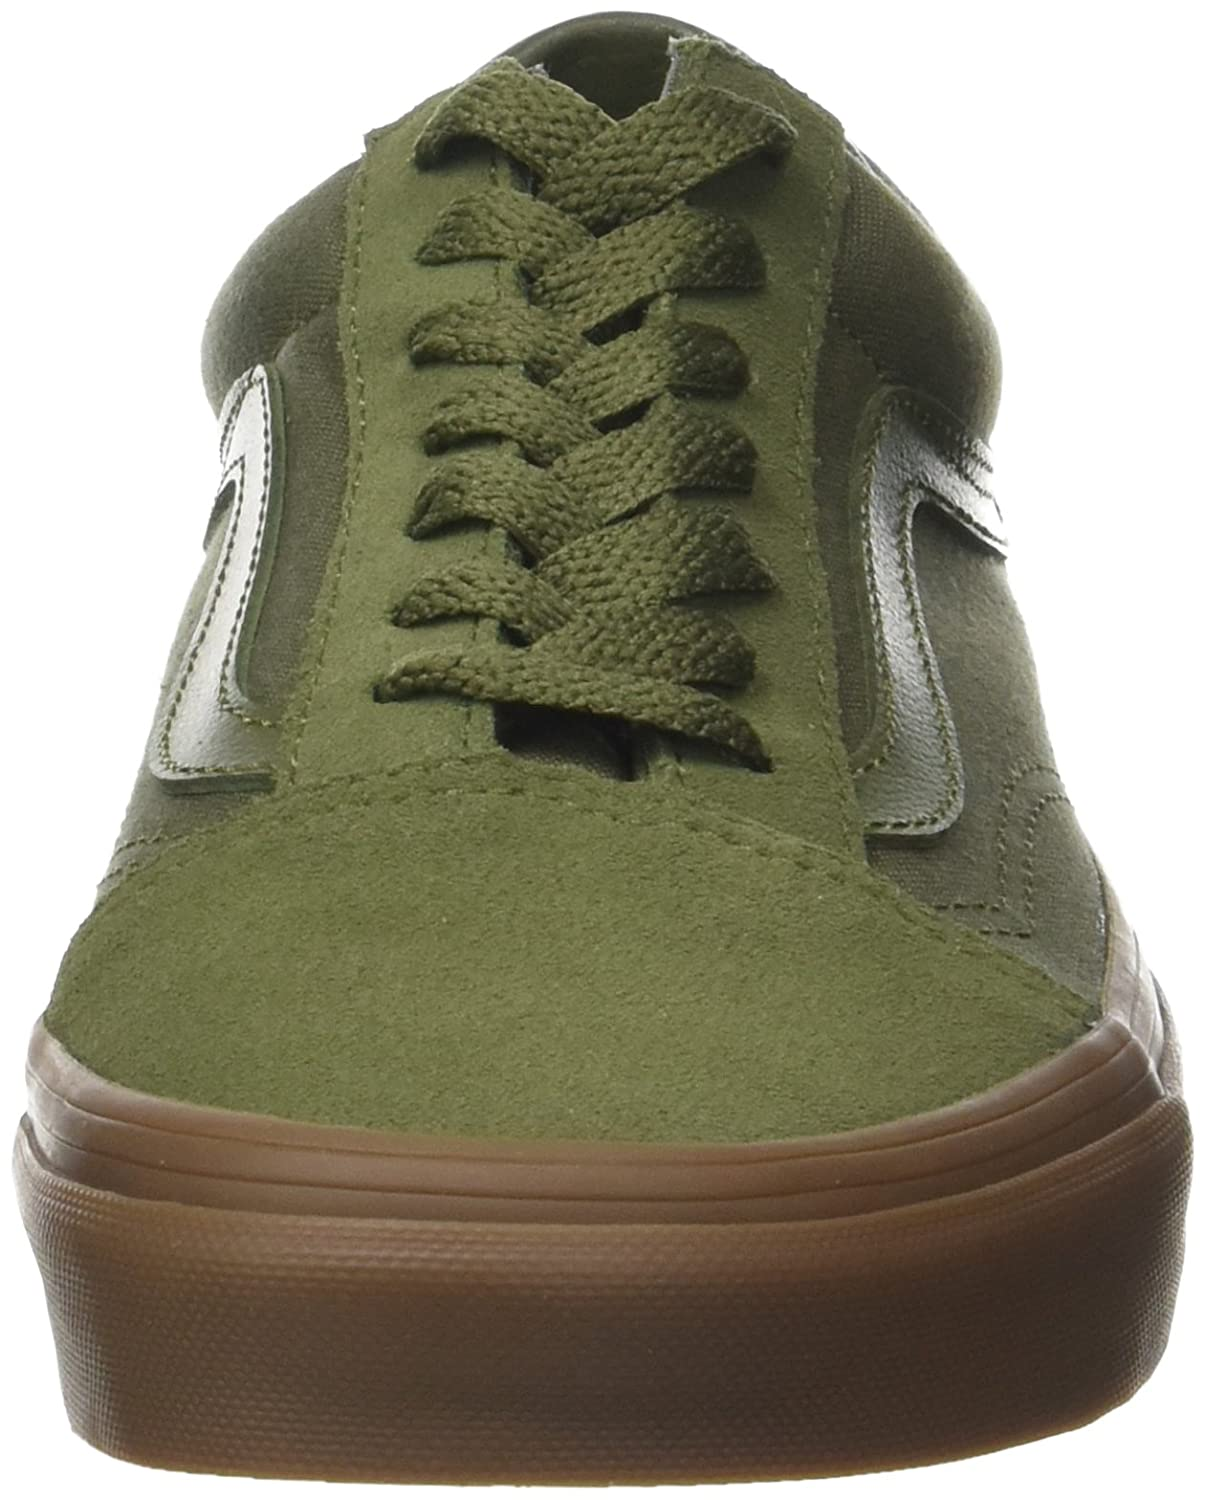 db27a85c Vans Unisex Adults' Old Skool Suede Trainers